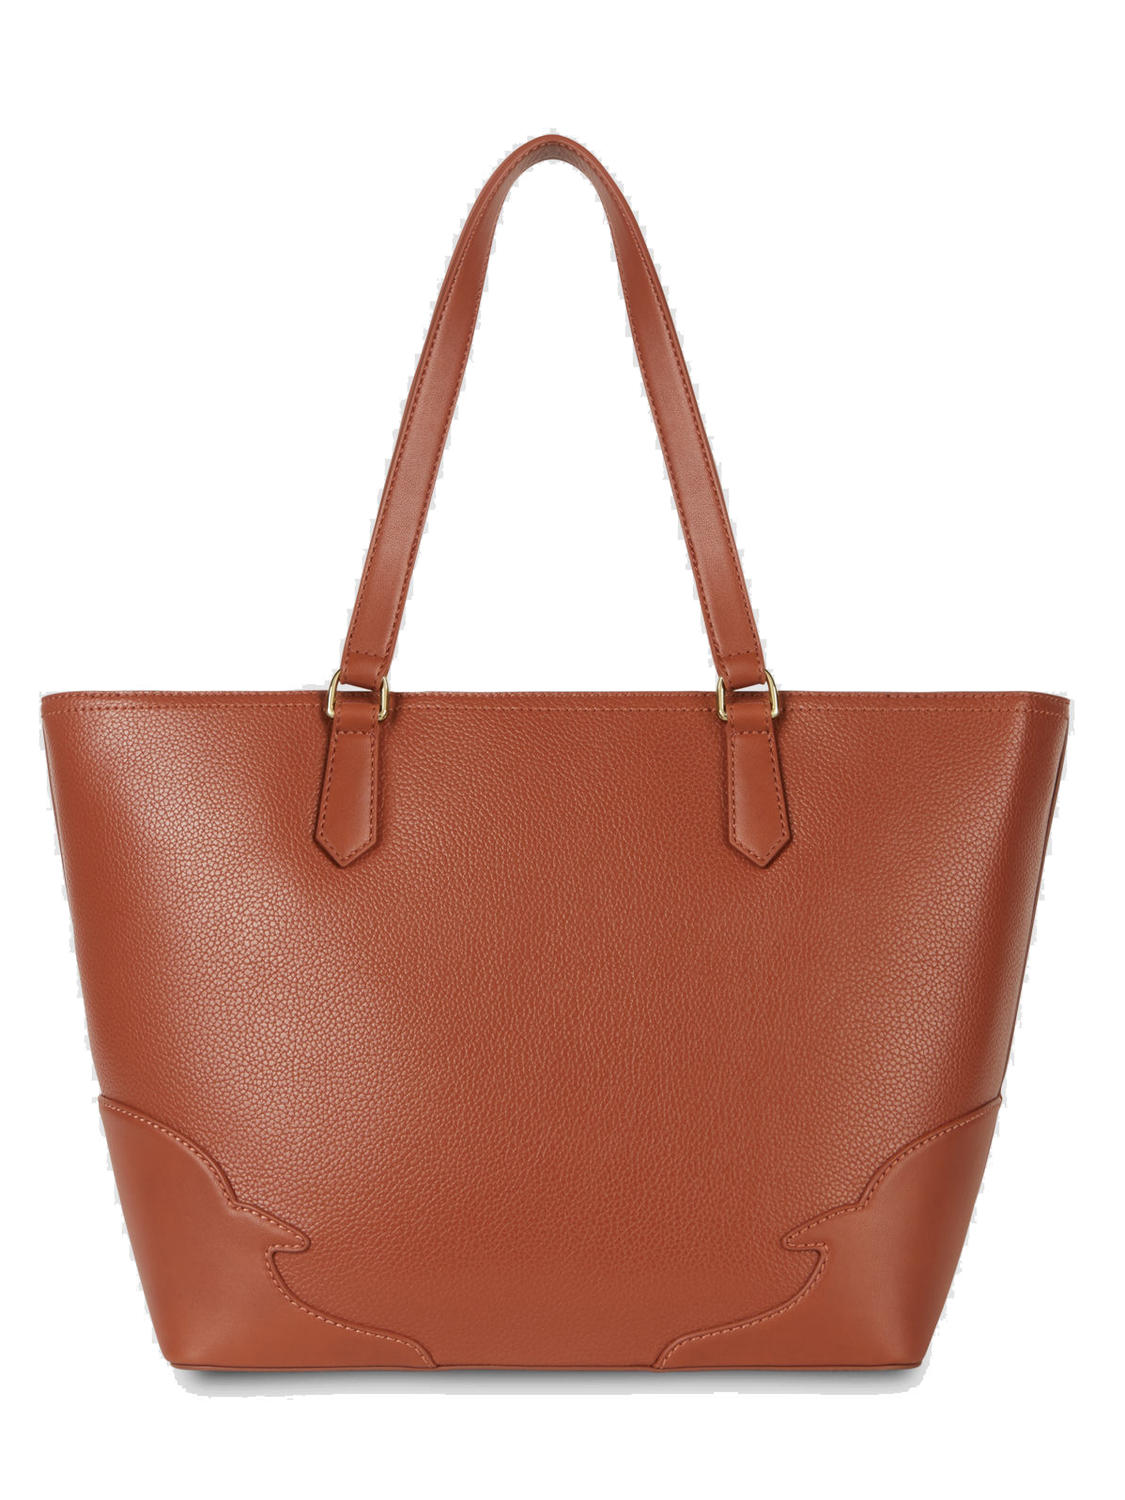 Borse Donna - DECO EDGE  Shopper a spalla